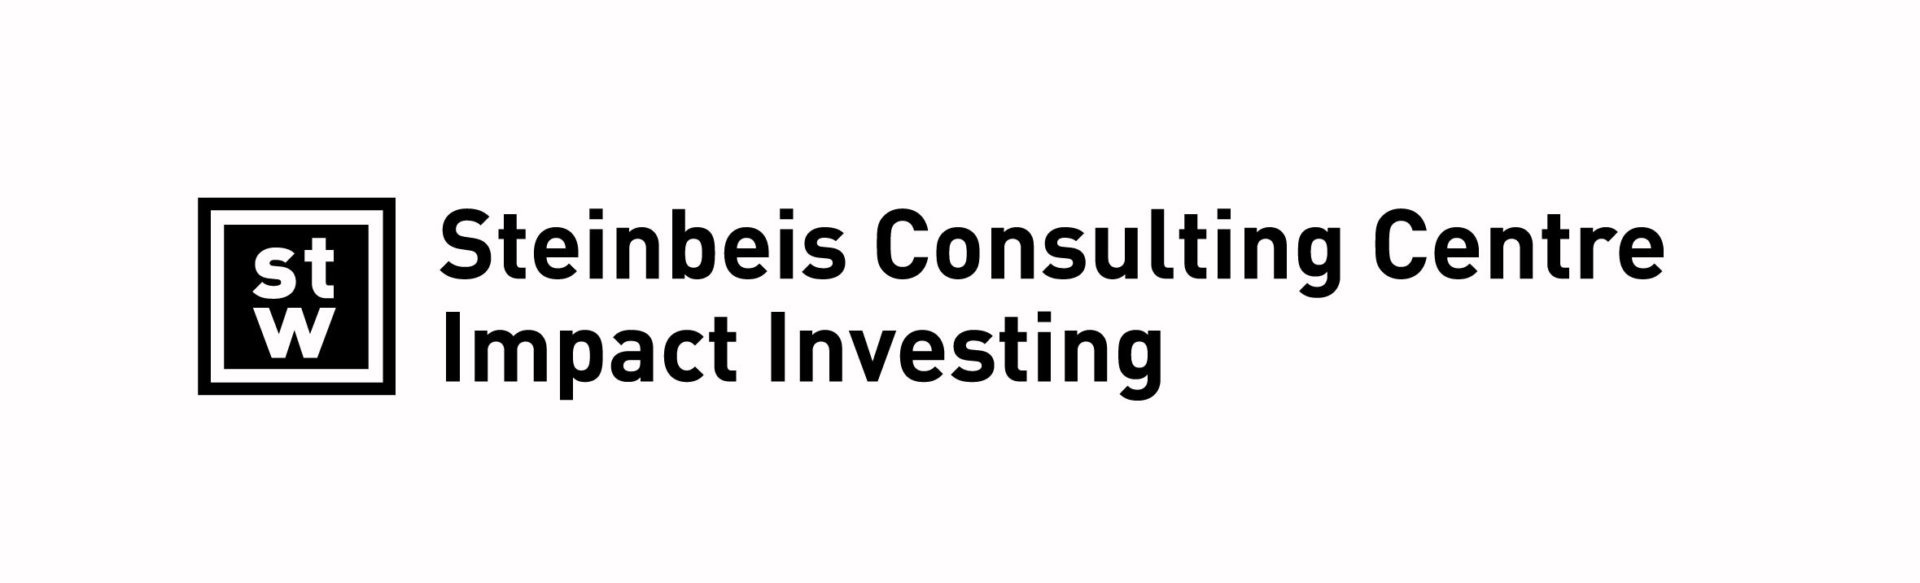 Steinbeis Consulting Impact Investing